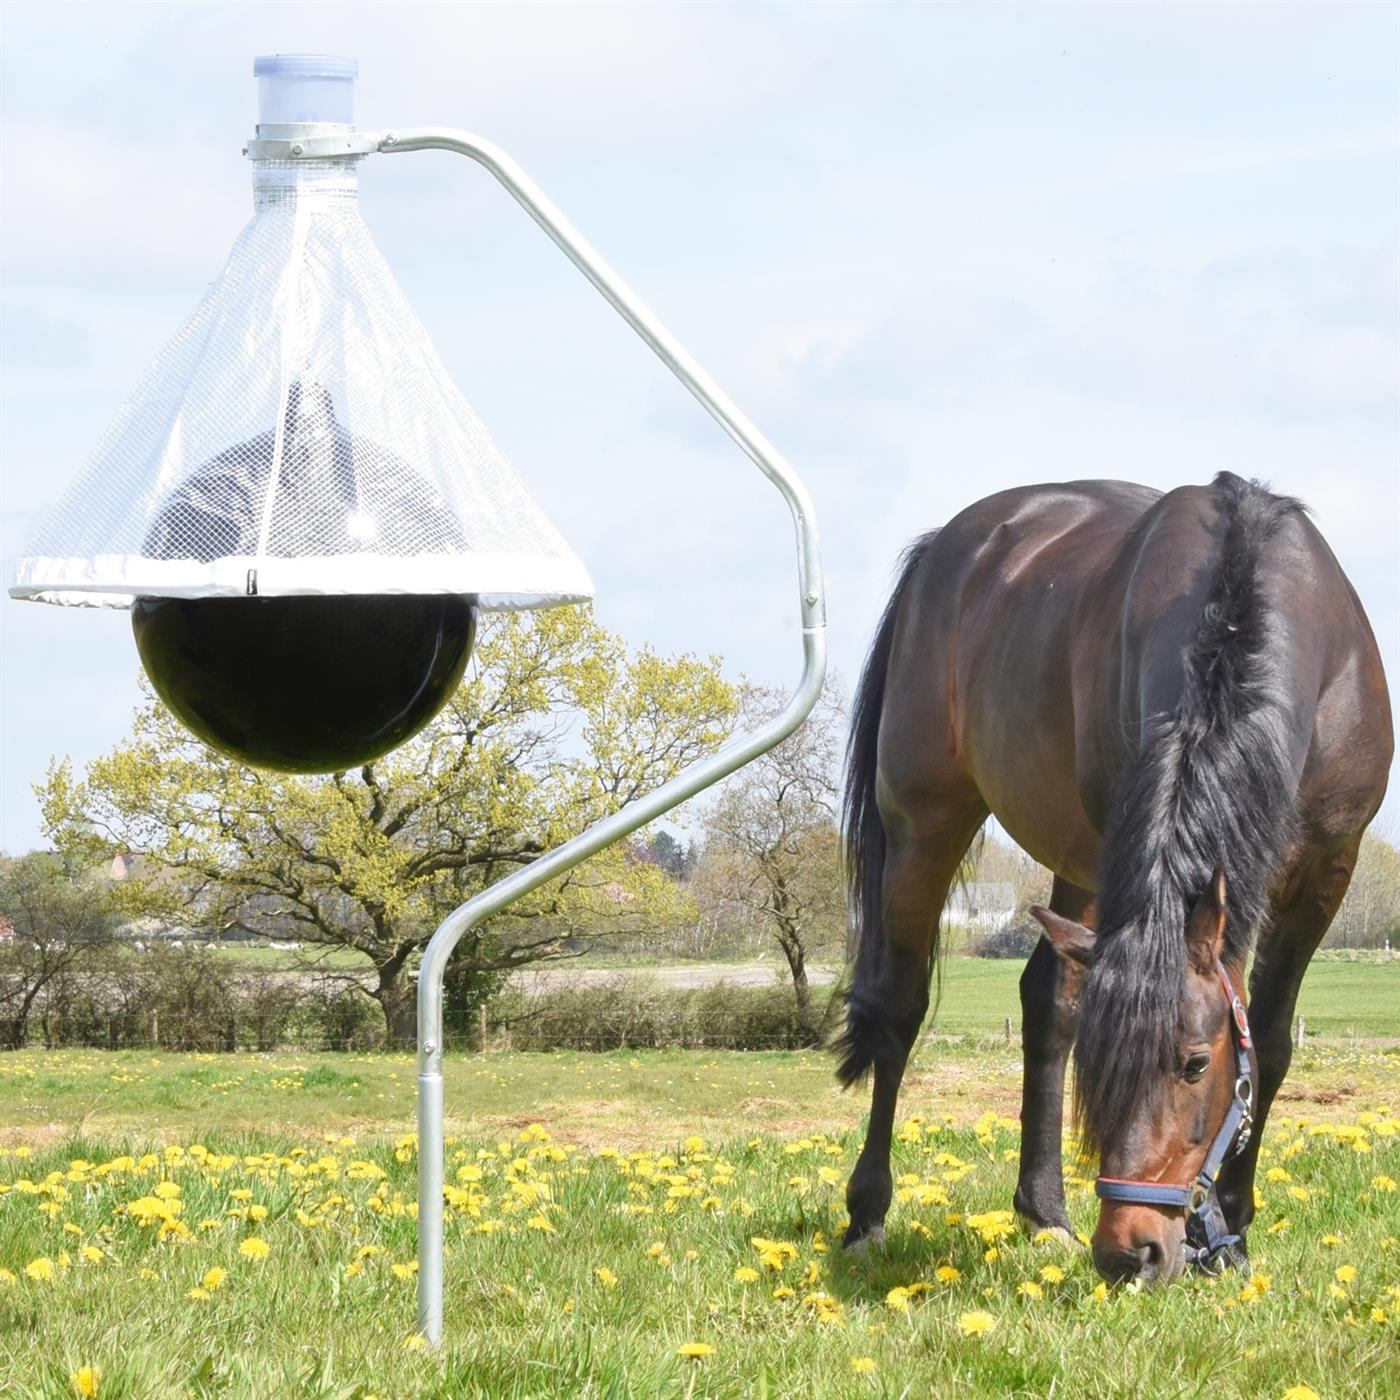 The Tabanus Trap can be put in your horse's field to keep horseflies away